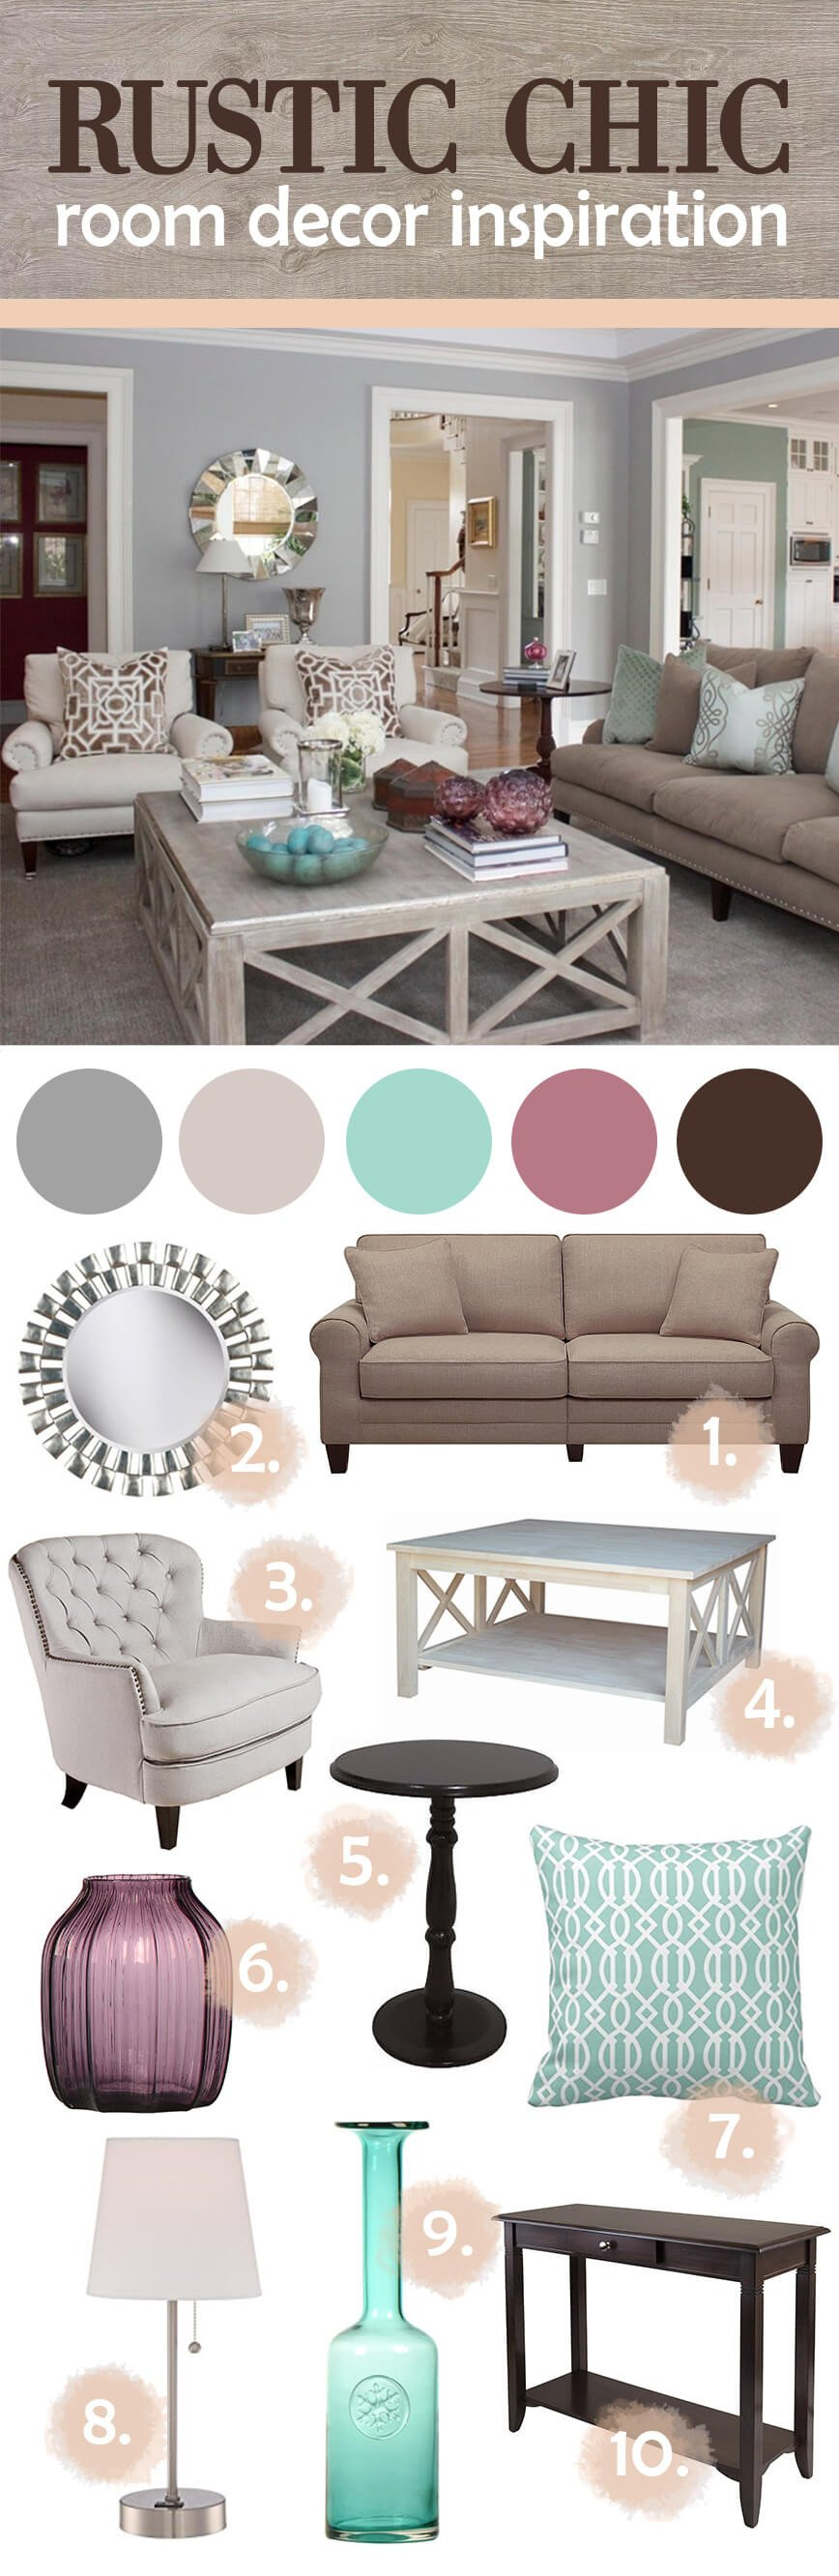 Rustic Chic Decor Living Room Beautiful 27 Best Rustic Chic Living Room Ideas and Designs for 2017